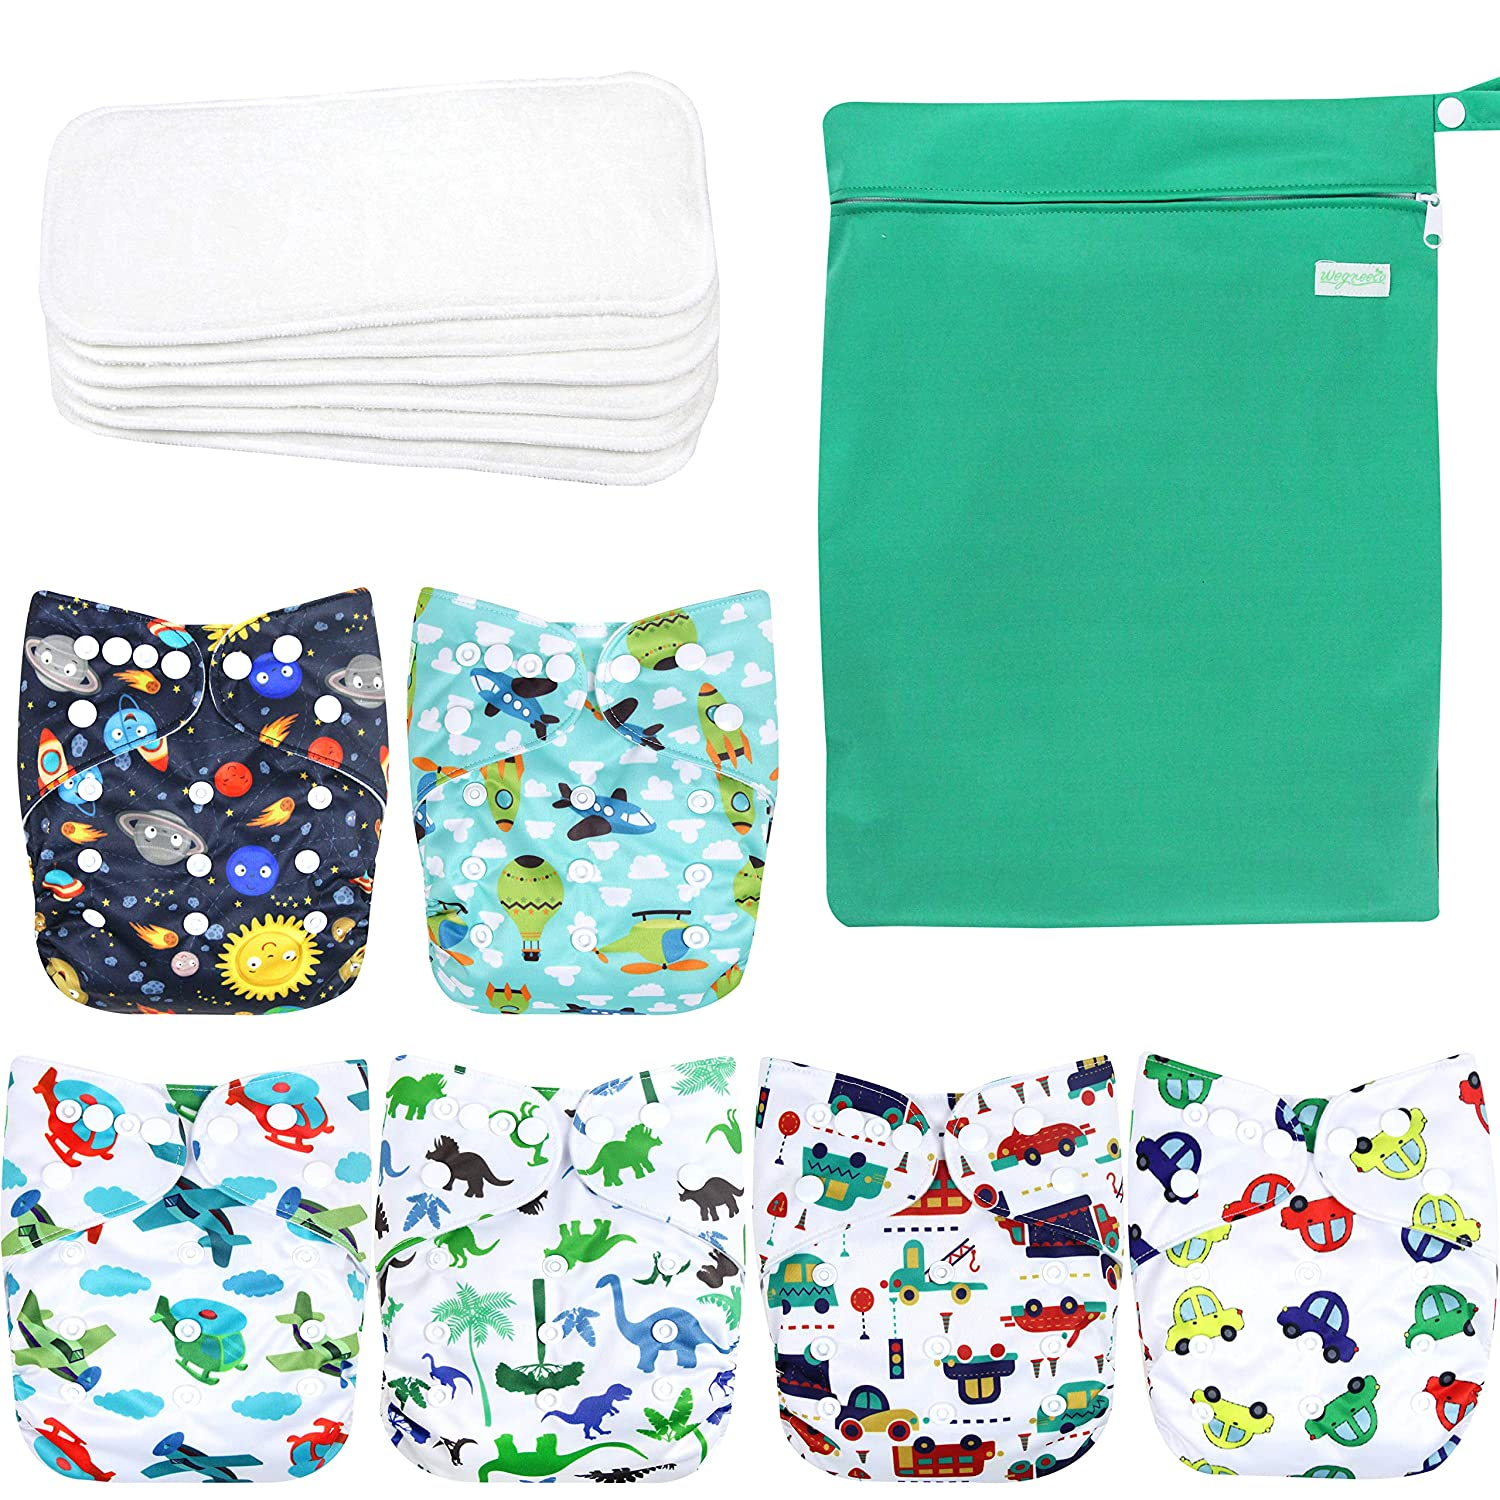 with 1 Wet Bag, Car, Airplane Wegreeco Washable Reusable Baby Cloth Pocket Diapers 6 Pack 6 Bamboo Inserts